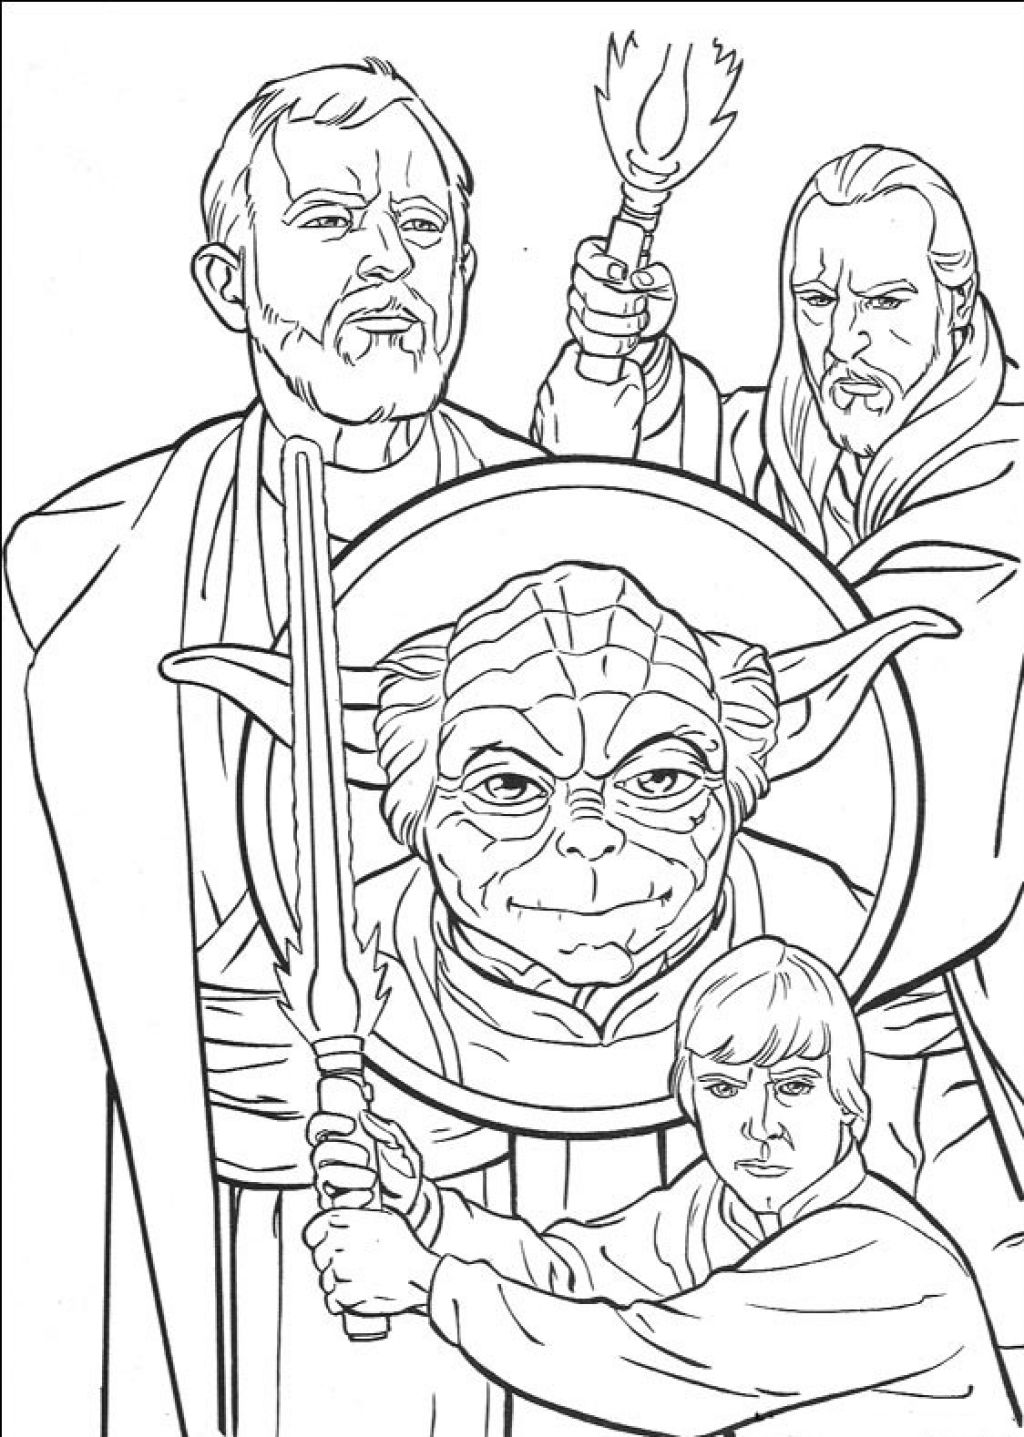 Best Star Wars Coloring Pages Free 23 For Your Download Coloring